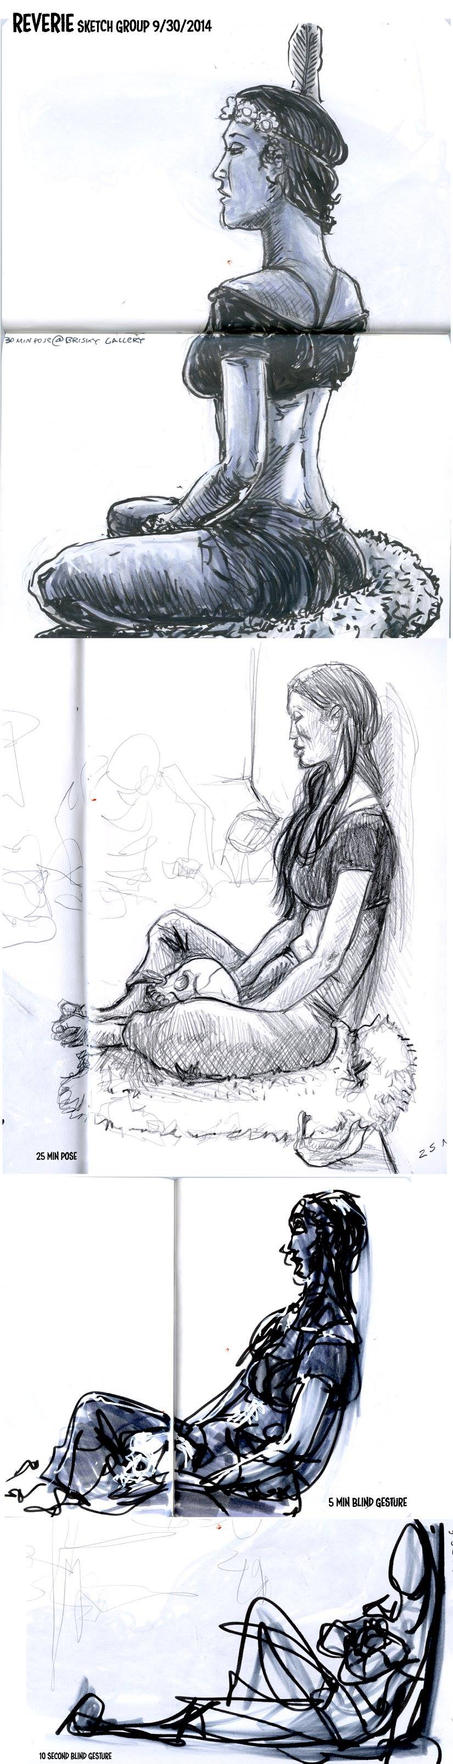 REVERIE figure drawings by FWACATA